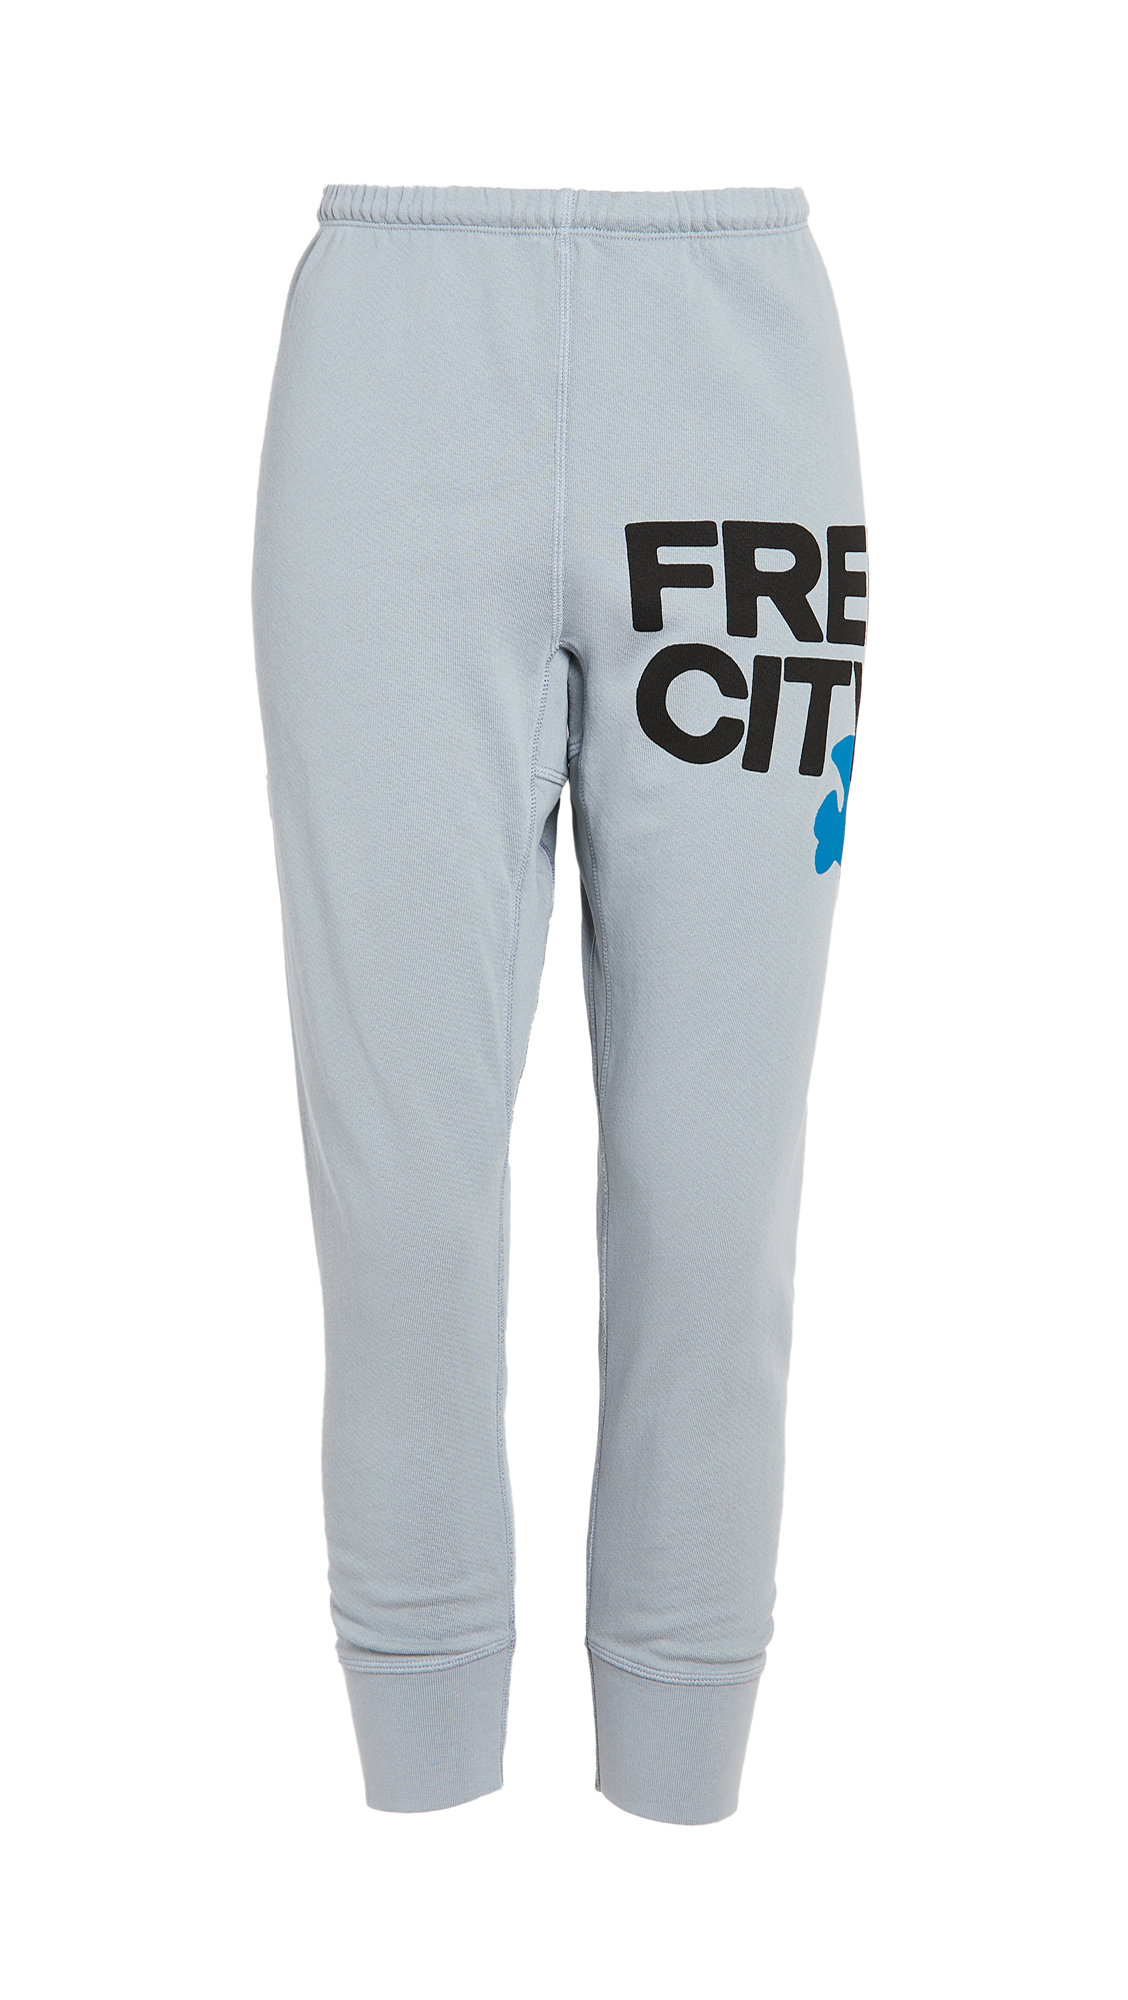 Freecity FREECITY LARGE 3/4 SWEATS